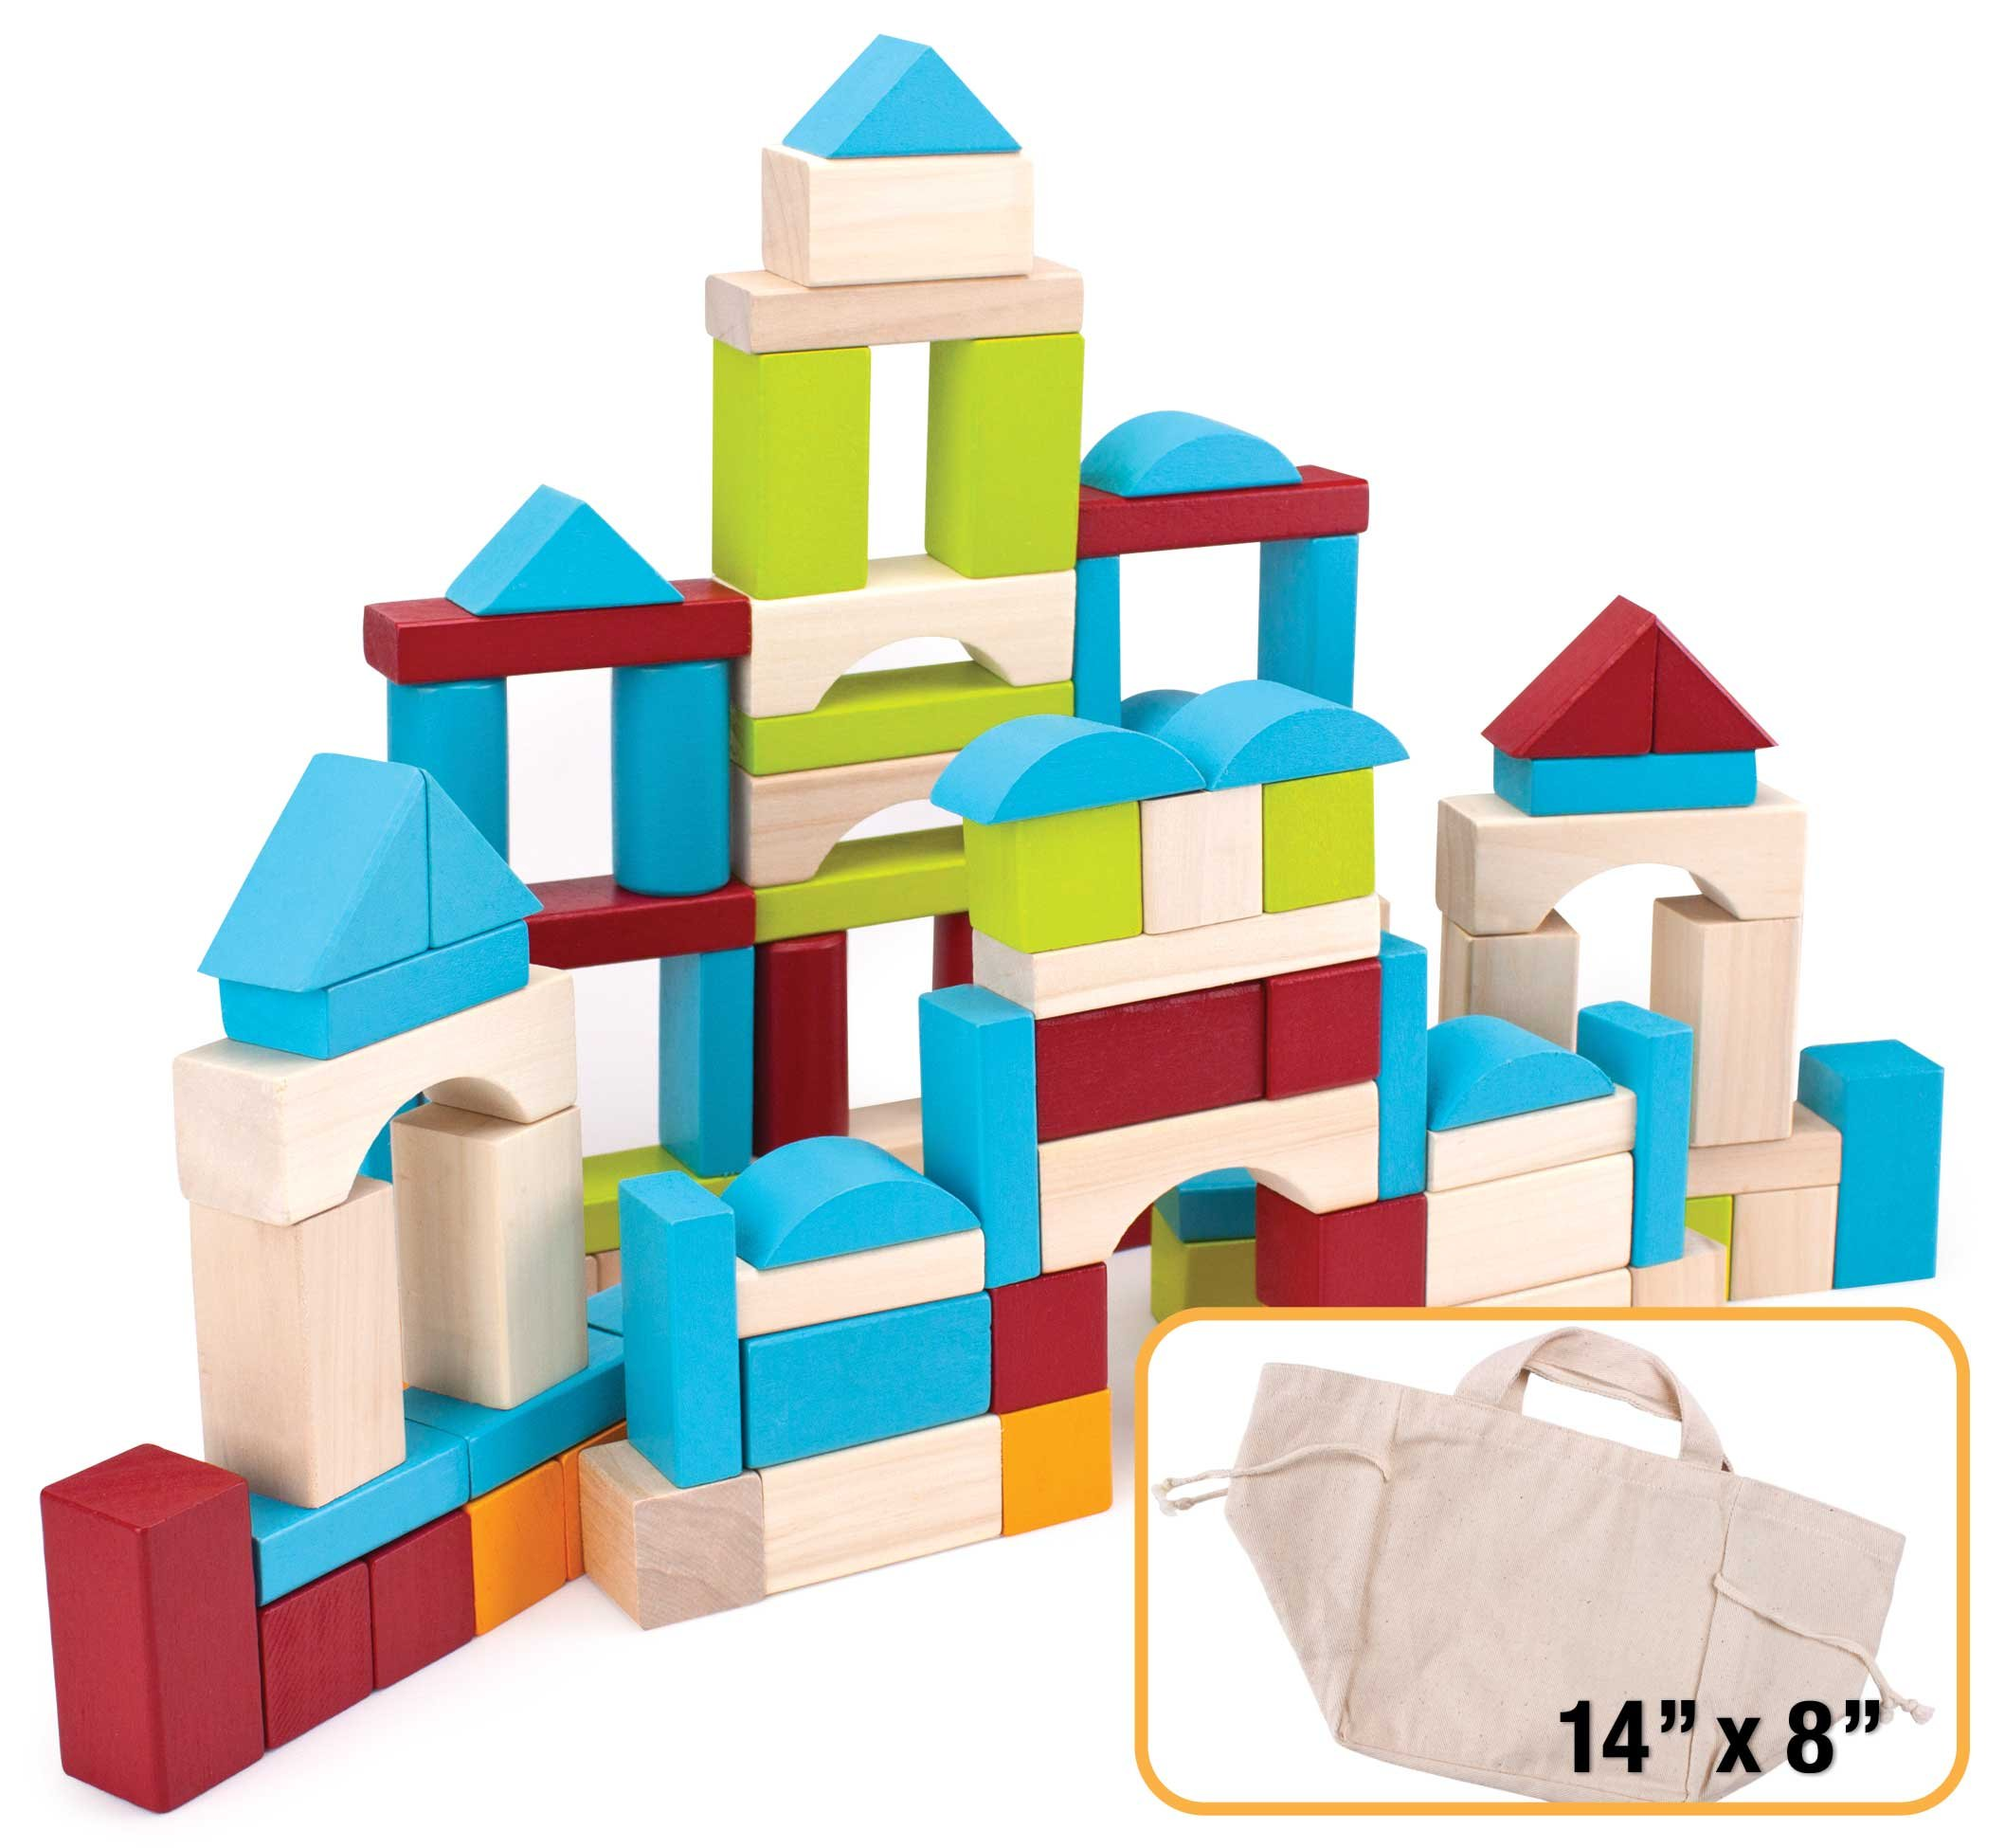 100 Piece Natural Wooden Building Block Set with Carrying Bag – Children's Deluxe Stacking Toy Set by Imagination Generation